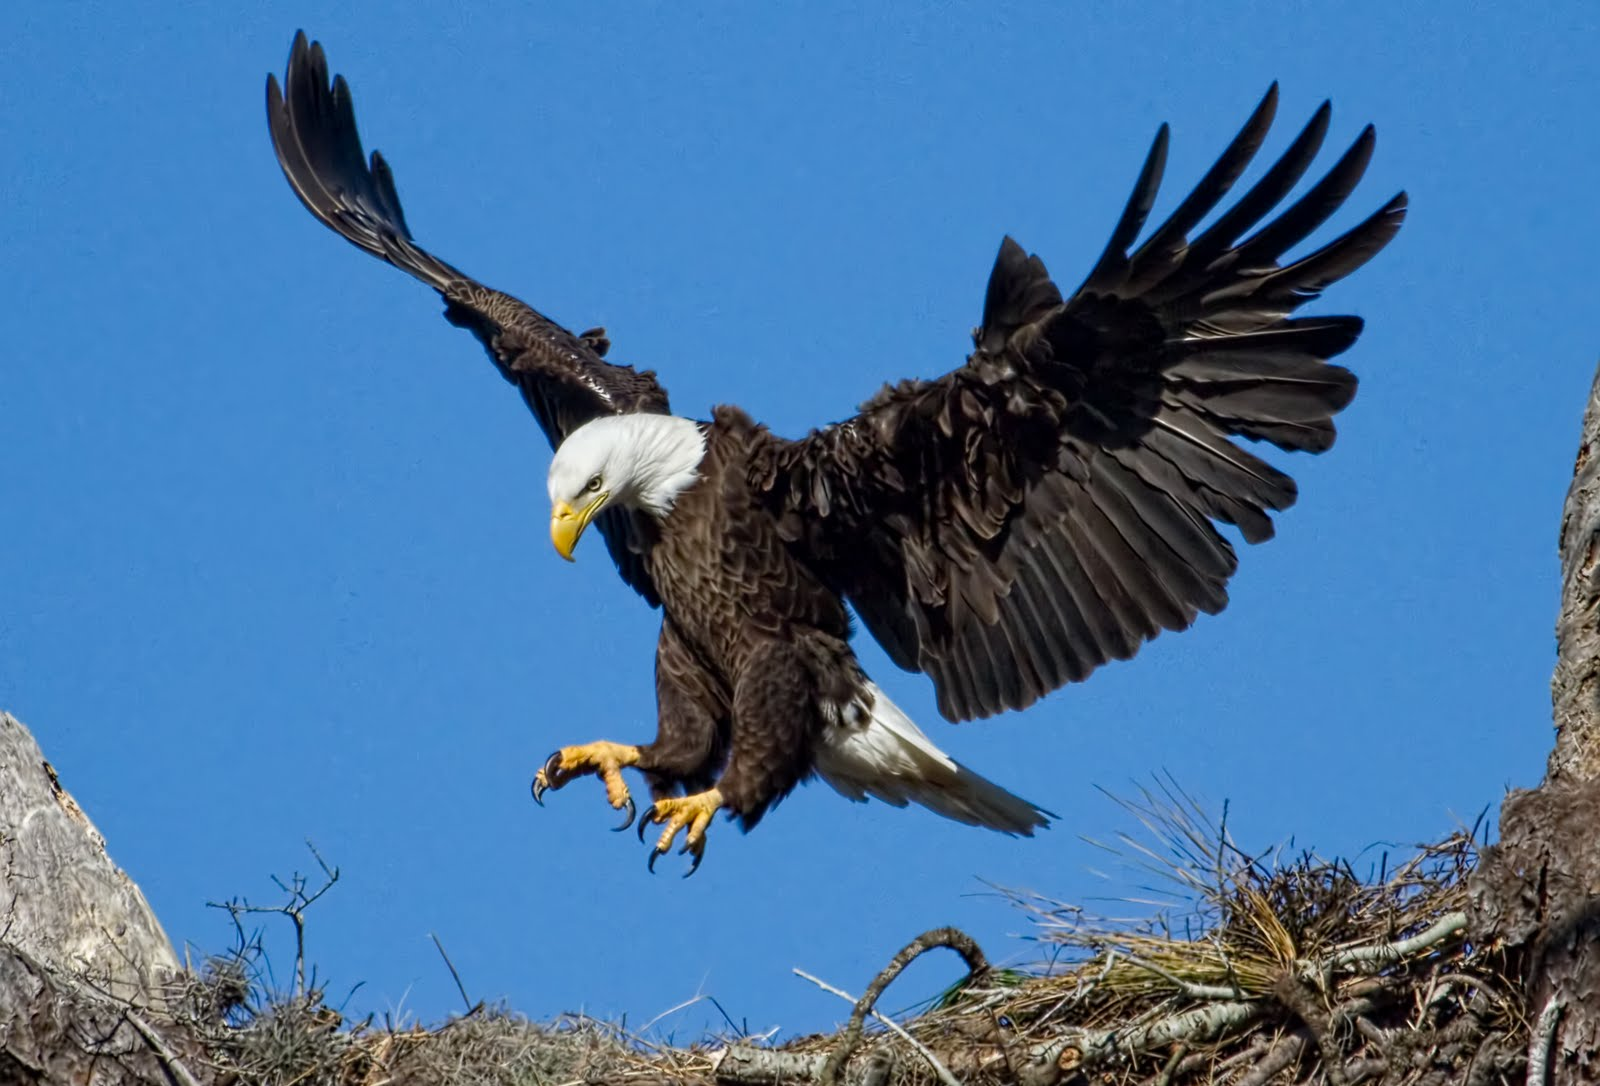 ... of a Pasco Tourist: Anclote Eagles Lure Birders from Around U.S